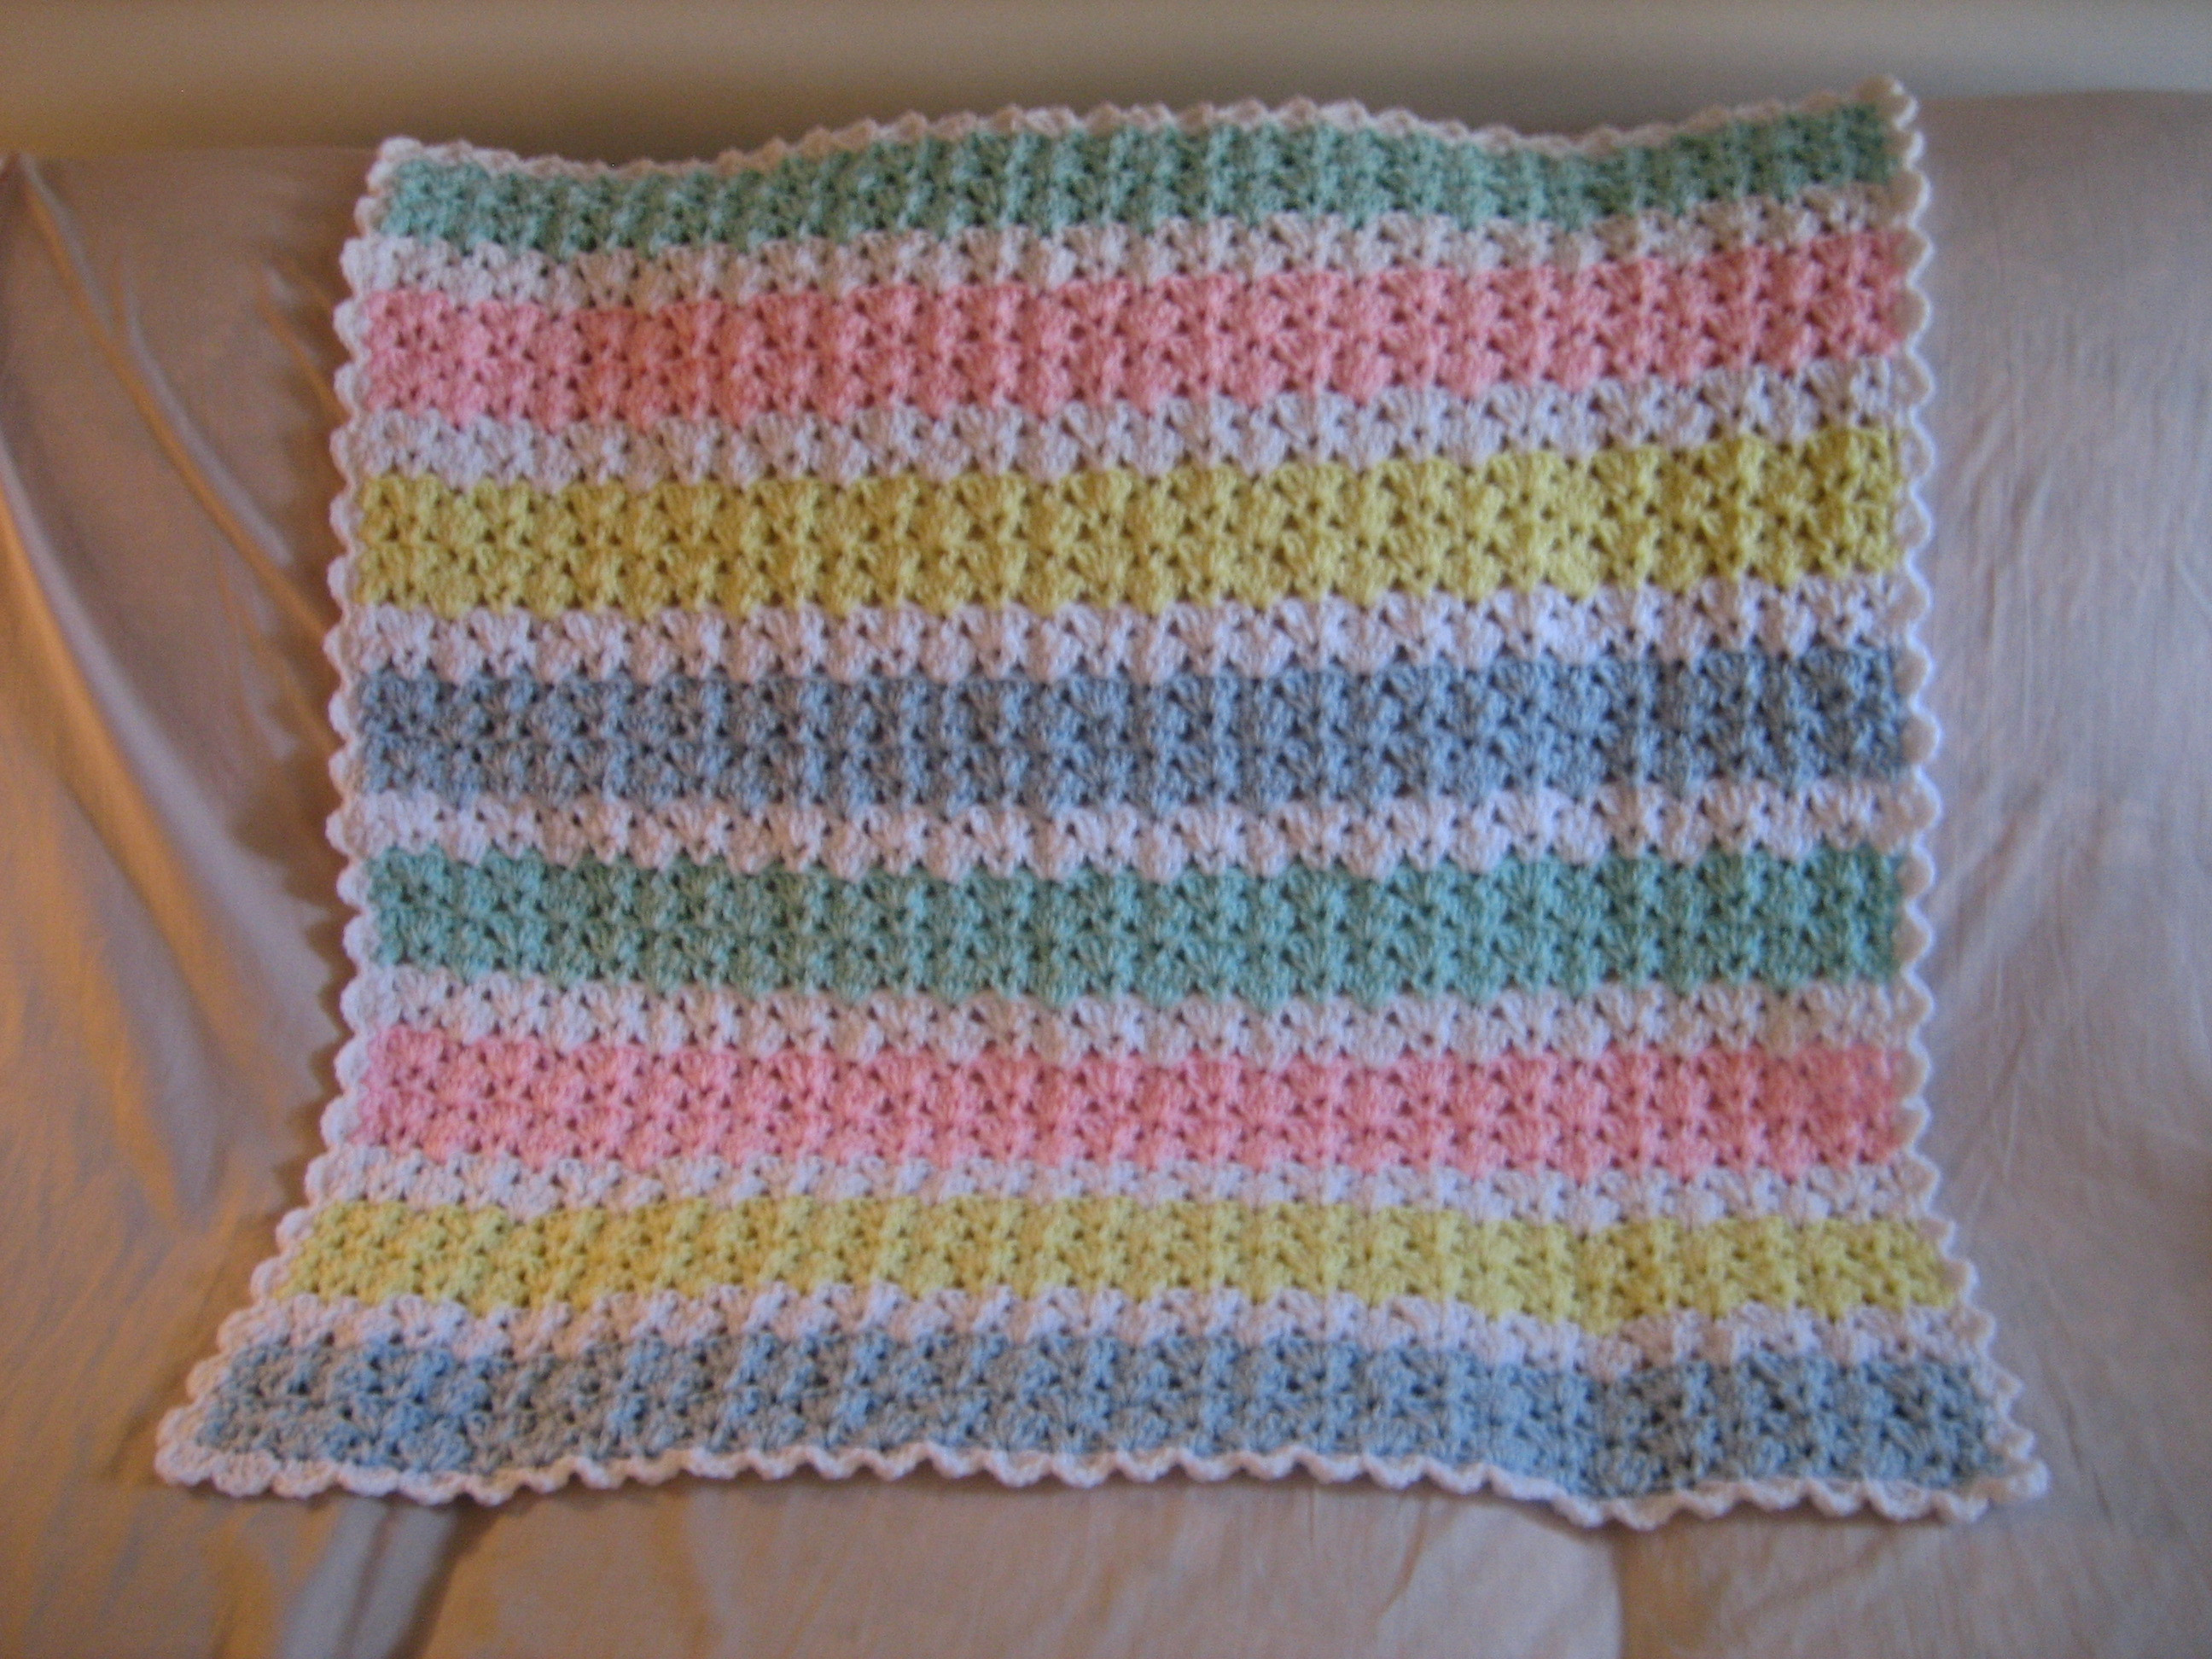 Free Crochet Throw Patterns Beautiful 39 Free Baby Afghan Crochet Patterns Of Contemporary 44 Pics Free Crochet Throw Patterns